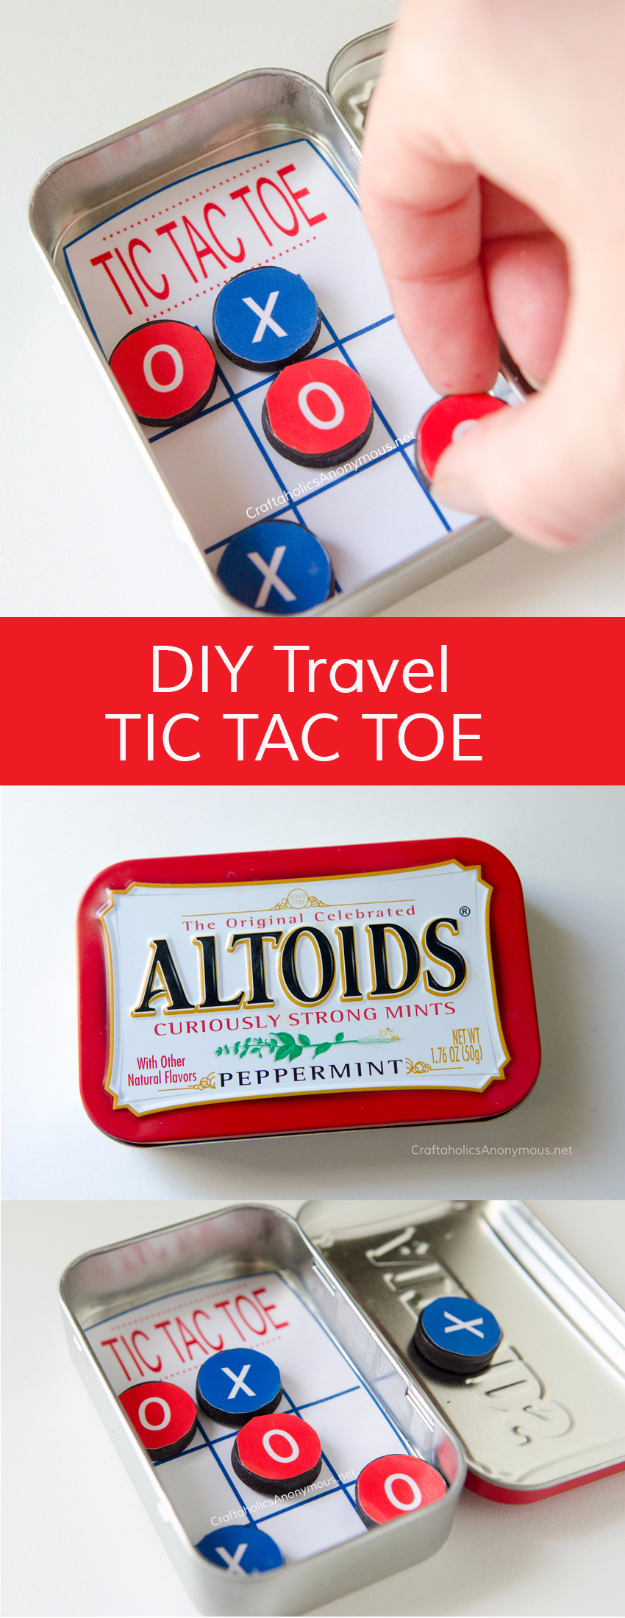 Dollar Store Crafts - DIY Pocket Tic Tac Toe - Best Cheap DIY Dollar Store Craft Ideas for Kids, Teen, Adults, Gifts and For Home #dollarstore #crafts #cheapcrafts #diy